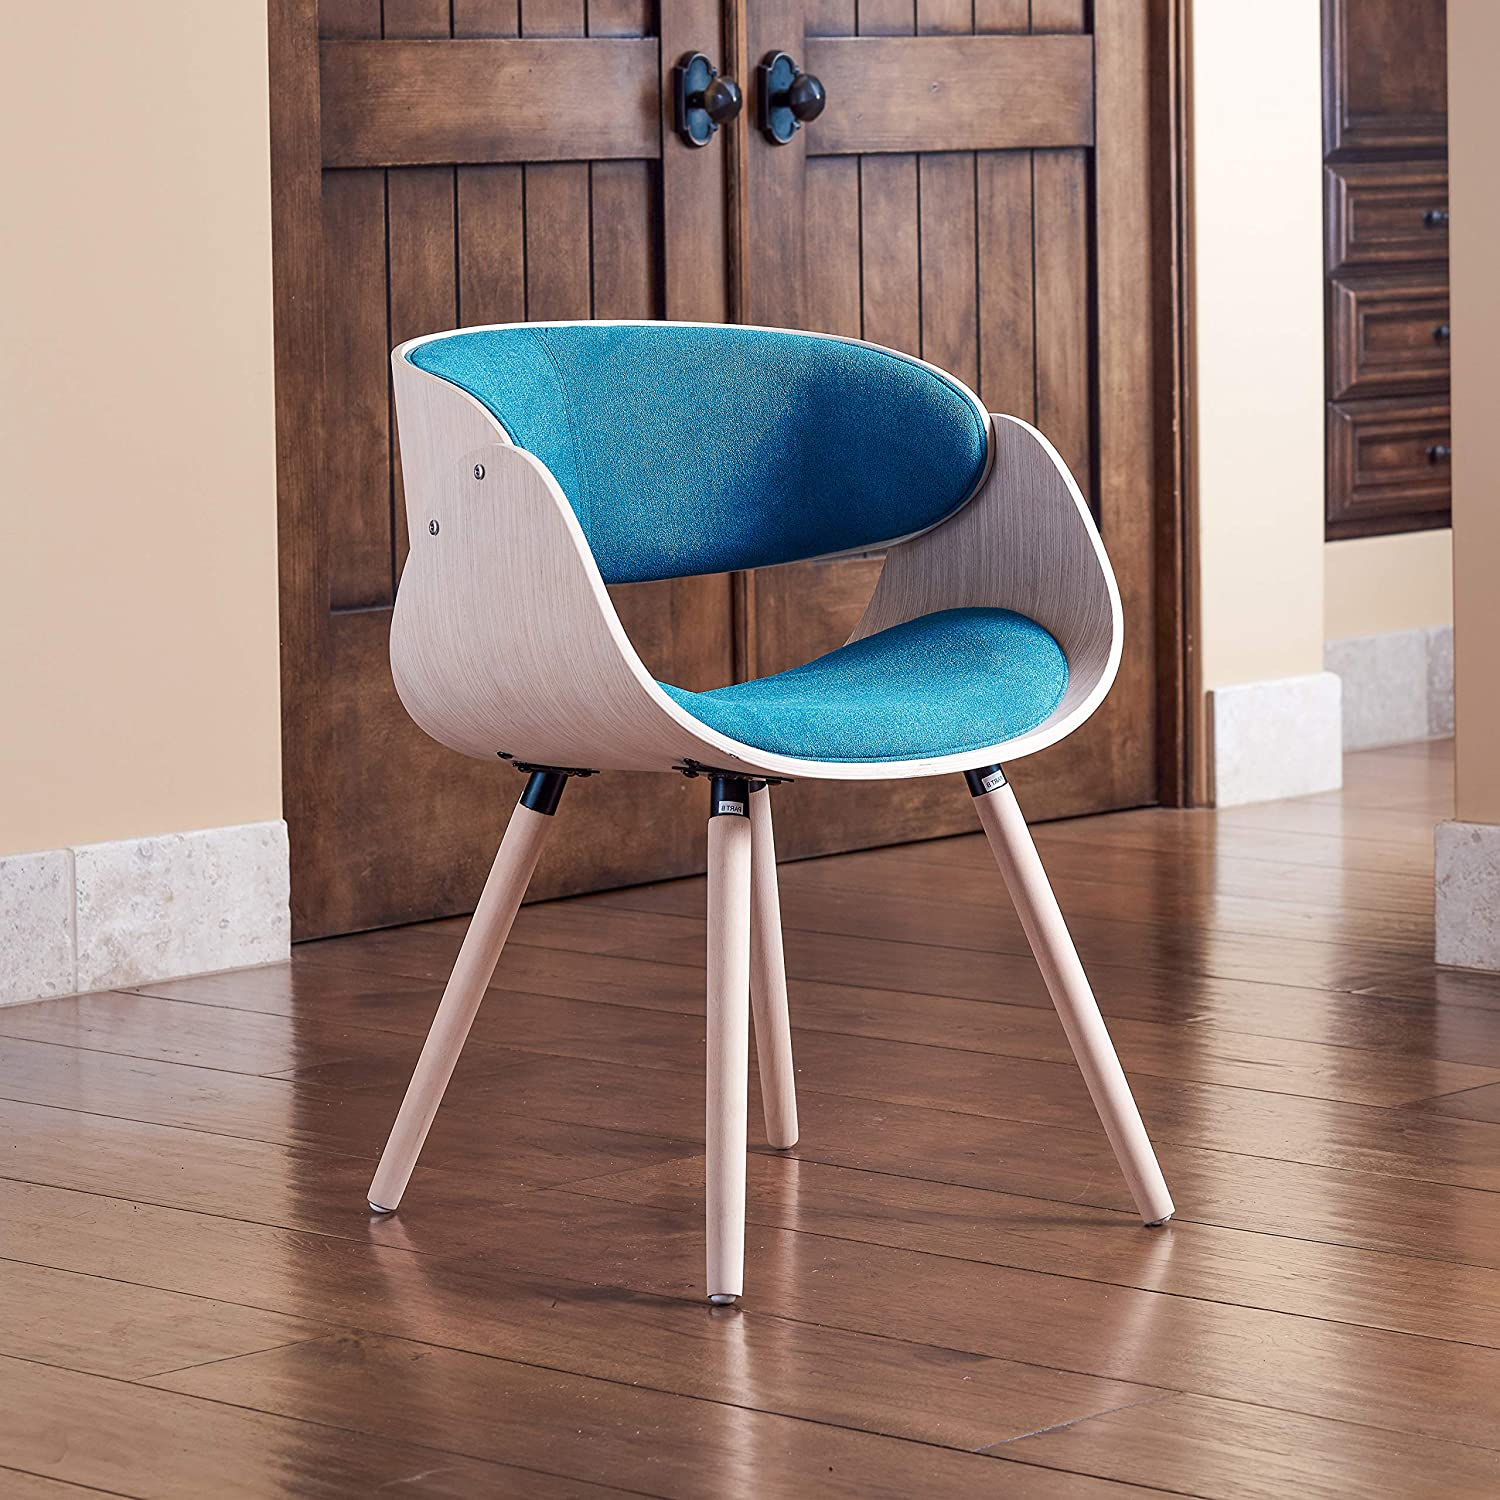 Amazon com supernova mid century accent armchair with foam padding turquoise suede fabric straight armrest kitchen dining